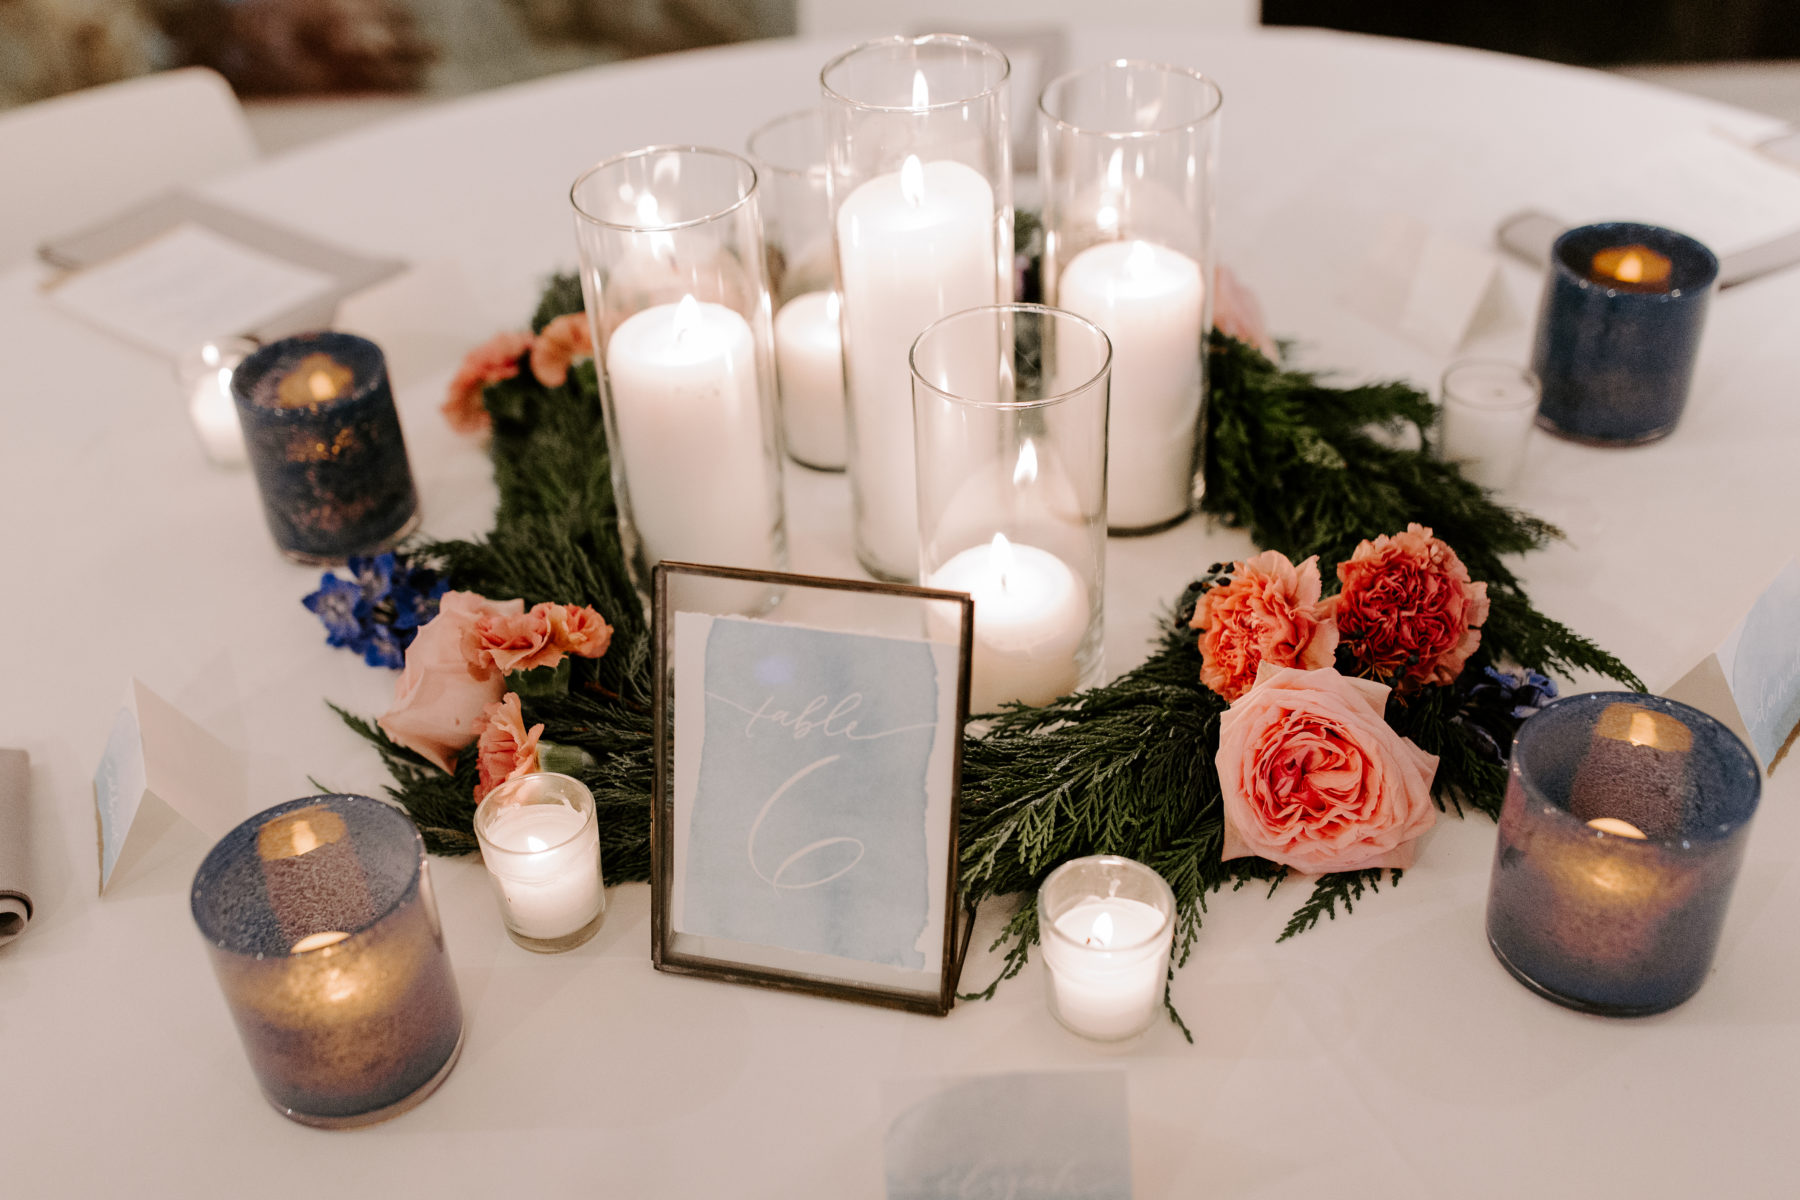 Candle Wedding Centerpieces: Abigail Bridges Photography featured on Nashville Bride Guide